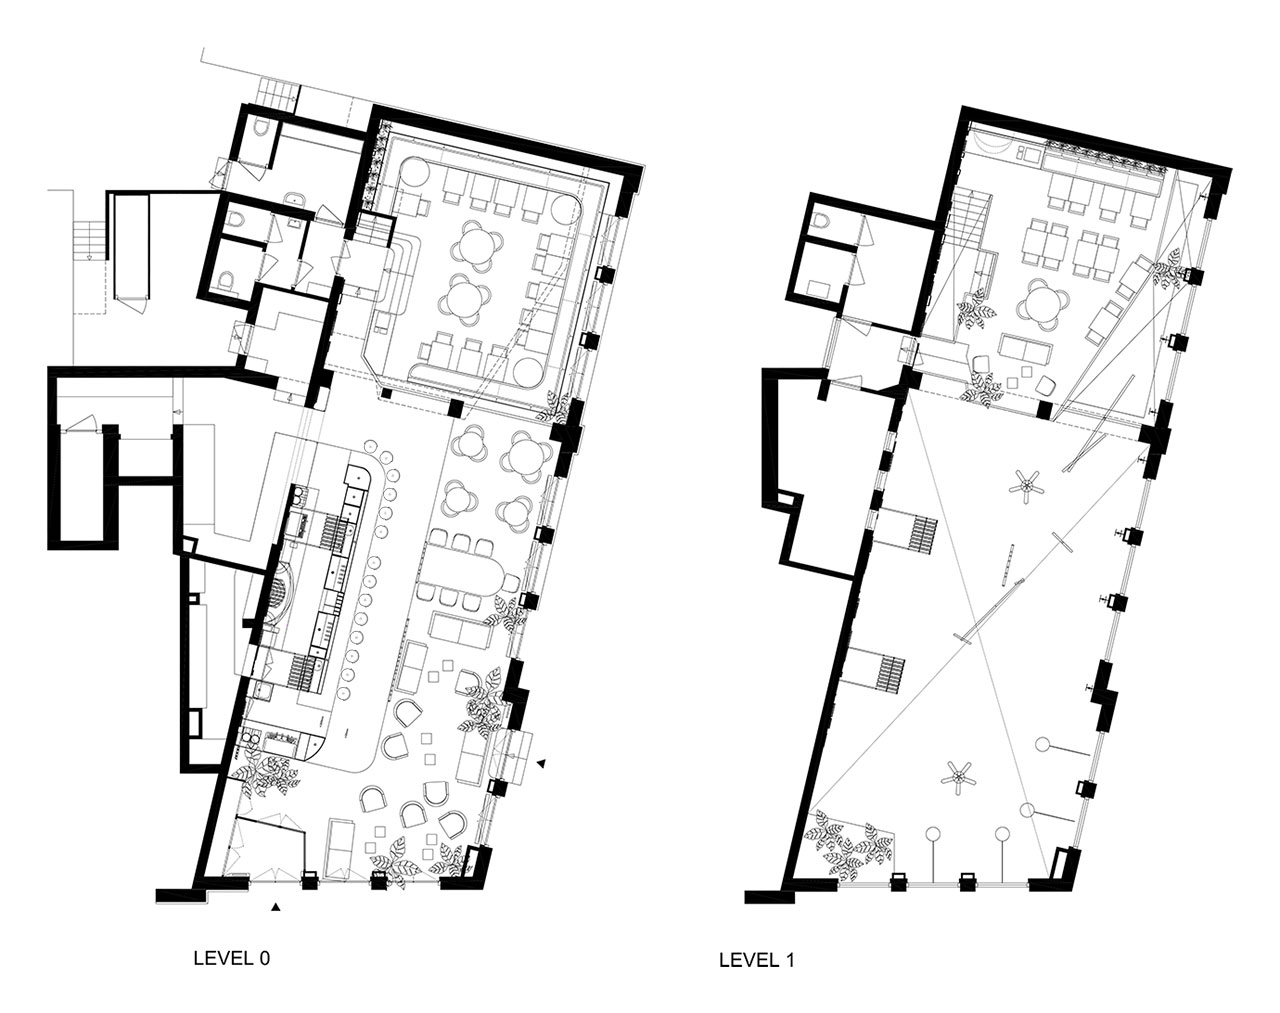 Floor plans © Studio Modijefsky.